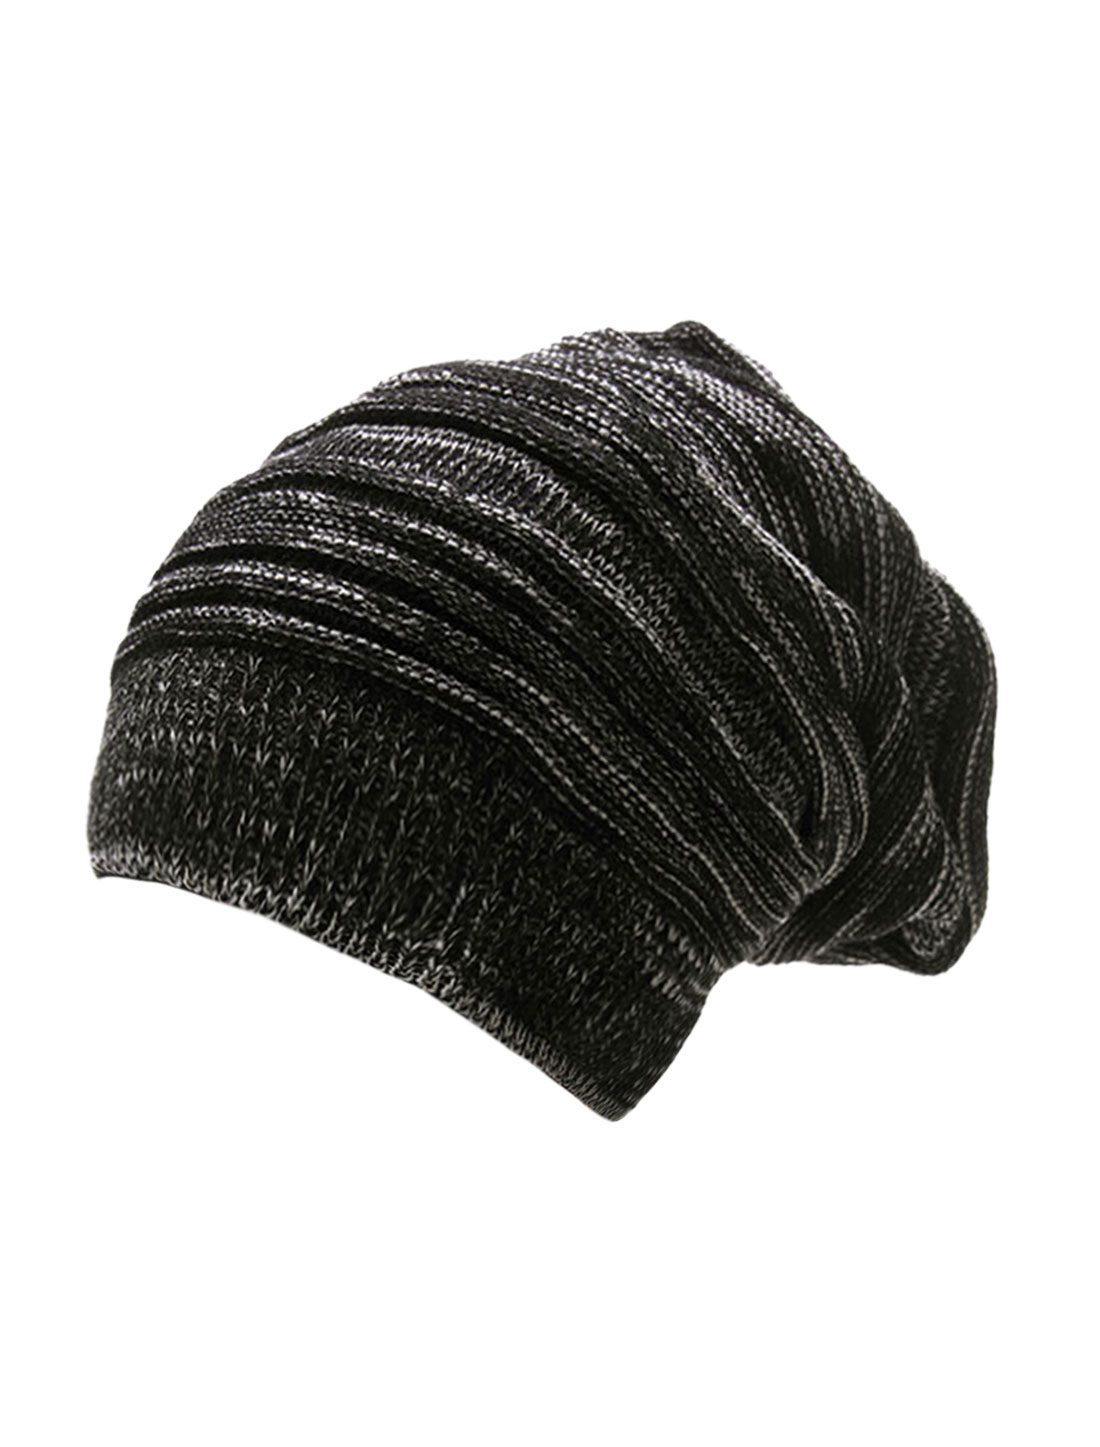 Mens Korean Stylish Warm Textures Design Knit Beanie Hat Black Off ... 2a4bf689978